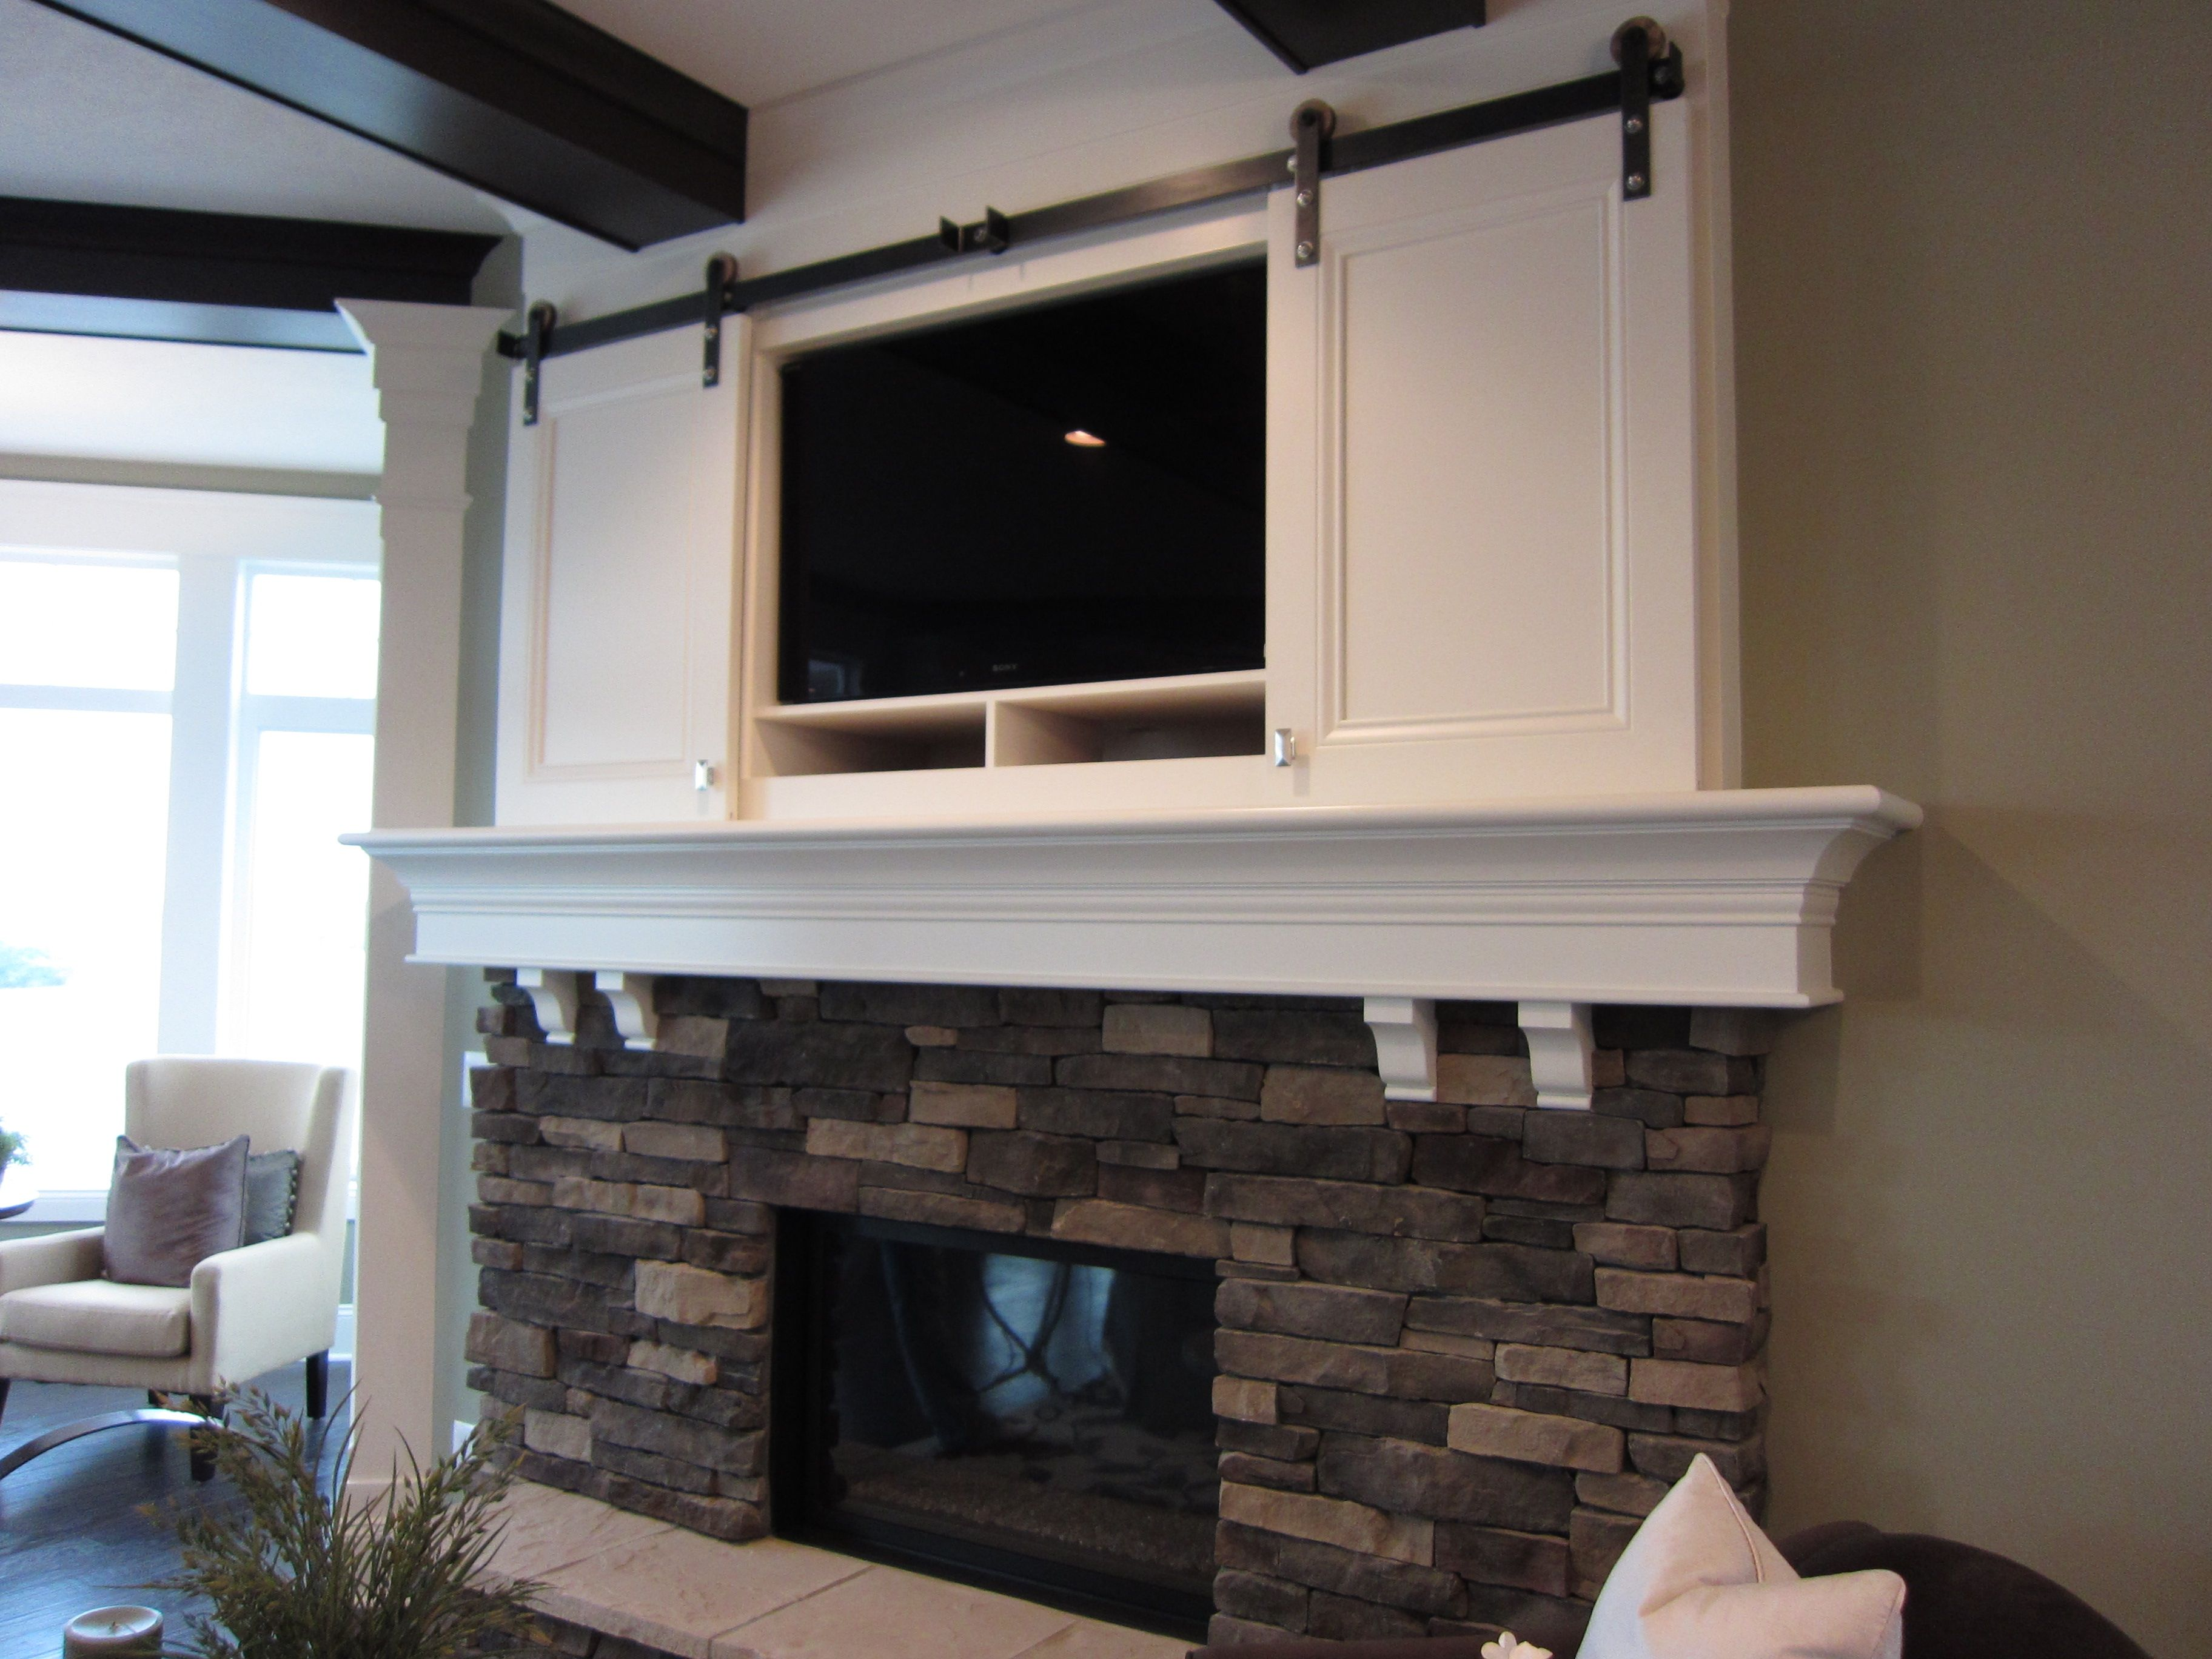 Propane Fireplace with Mantel Inspirational Fireplace Tv Mantel Ideas Best 25 Tv Above Fireplace Ideas